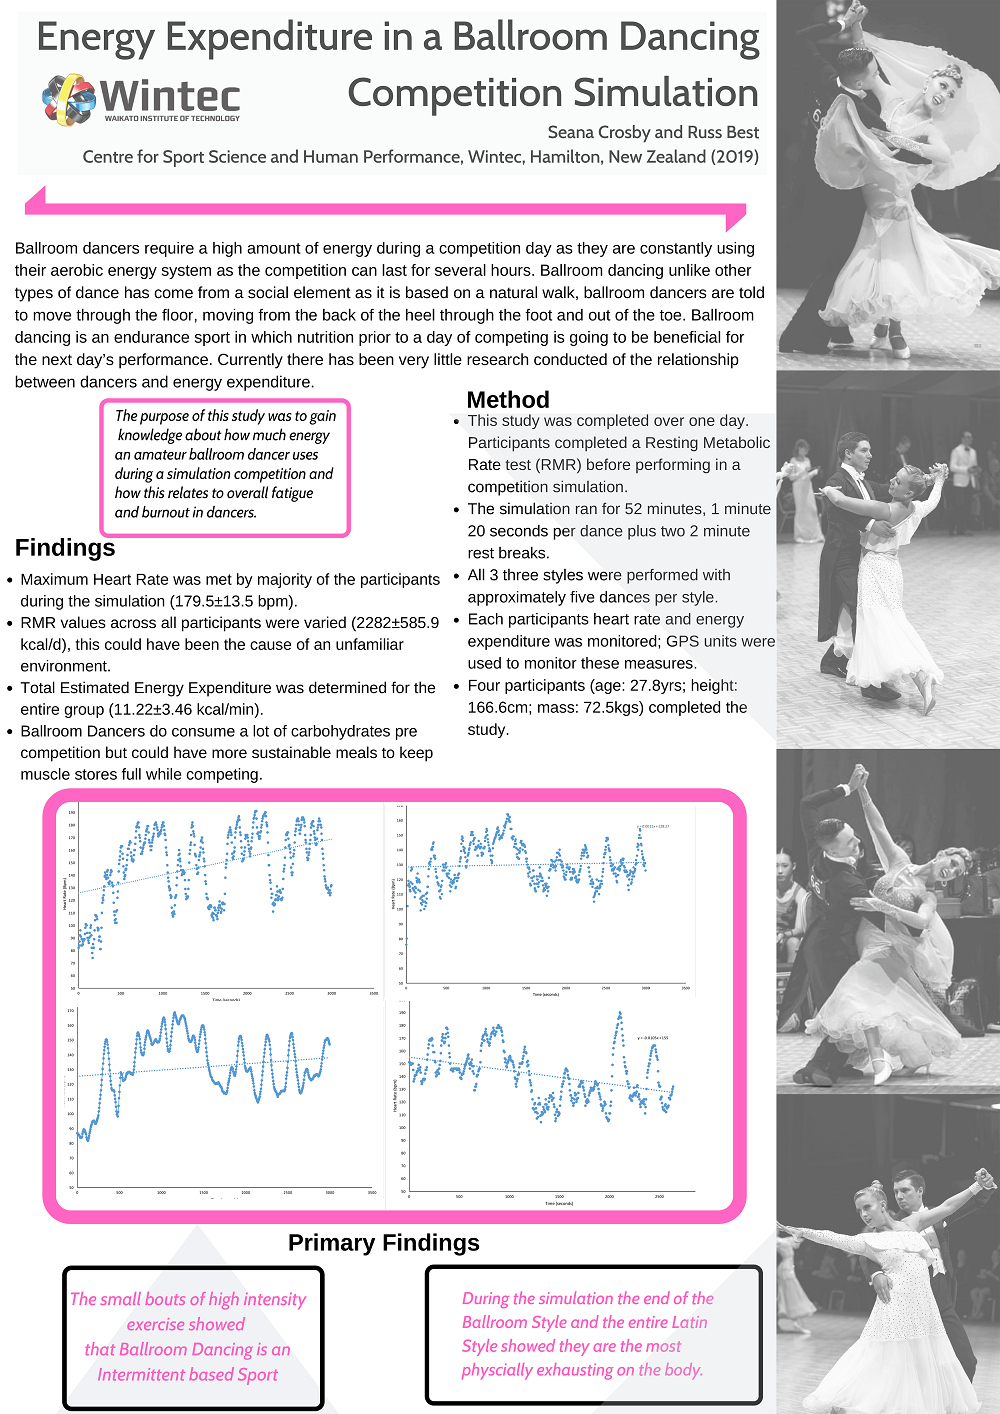 Energy Expenditure in a Ballroom Dancing Competition Simulation